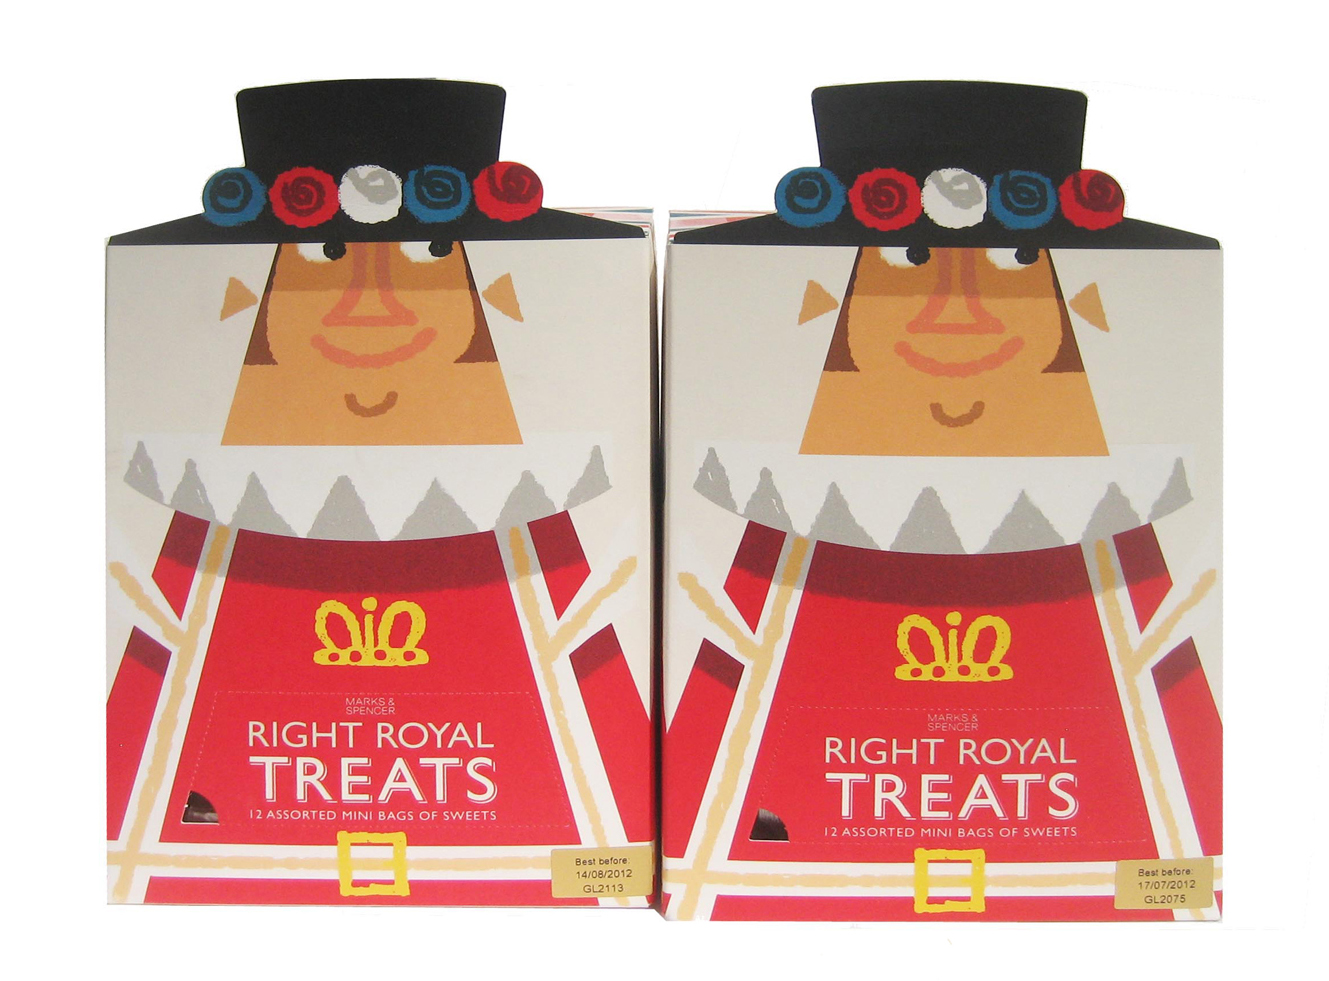 M&S Diamond Jubilee confectionery packaging